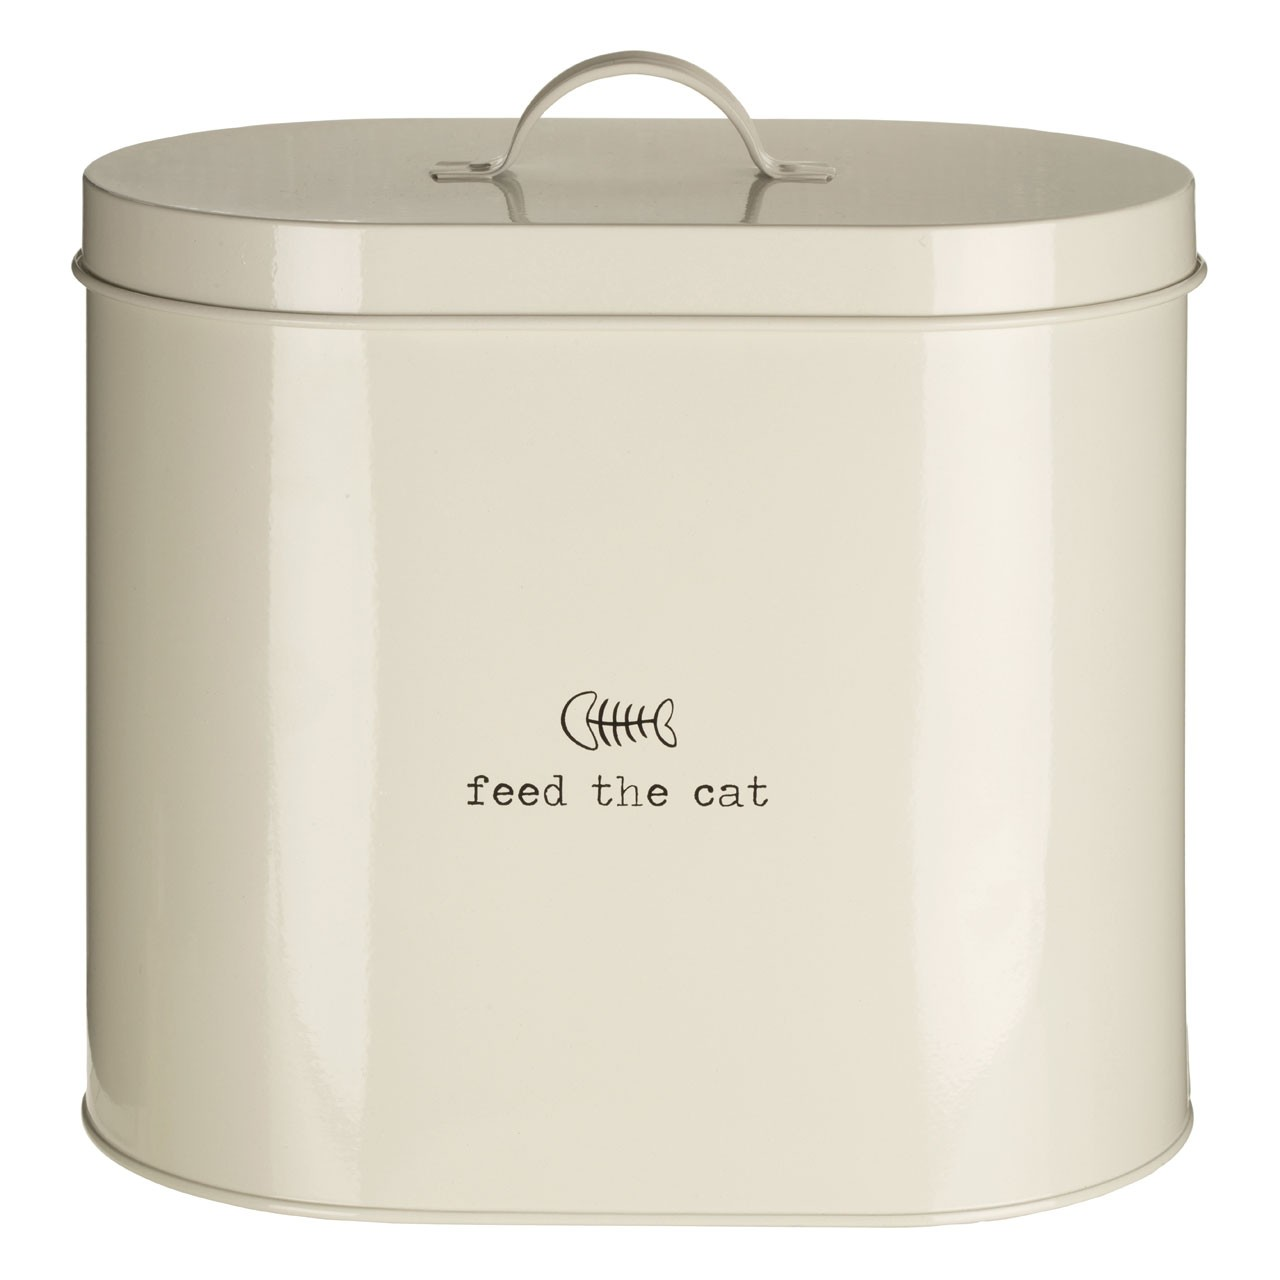 "Adore Pets ""Feed The Cat"" Food Storage Bin with Spoon, Cream"